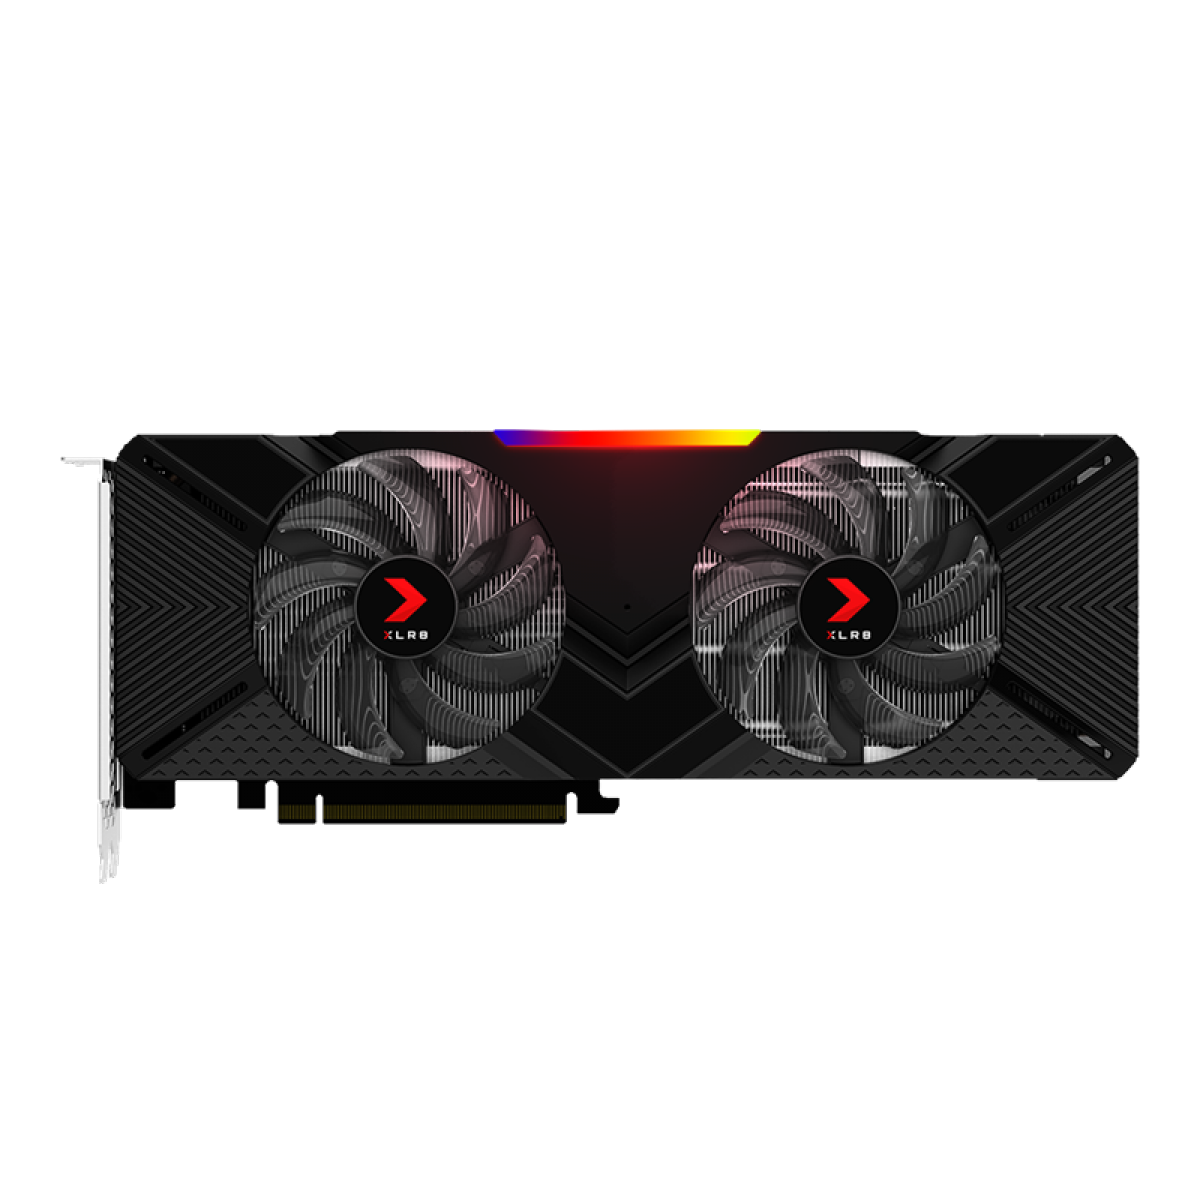 Placa de Vídeo PNY Geforce RTX 2080 XLR8 Gaming Overclocked Edition 8GB GDDR6, 256Bit, VCG20808DFPPB-O-TF